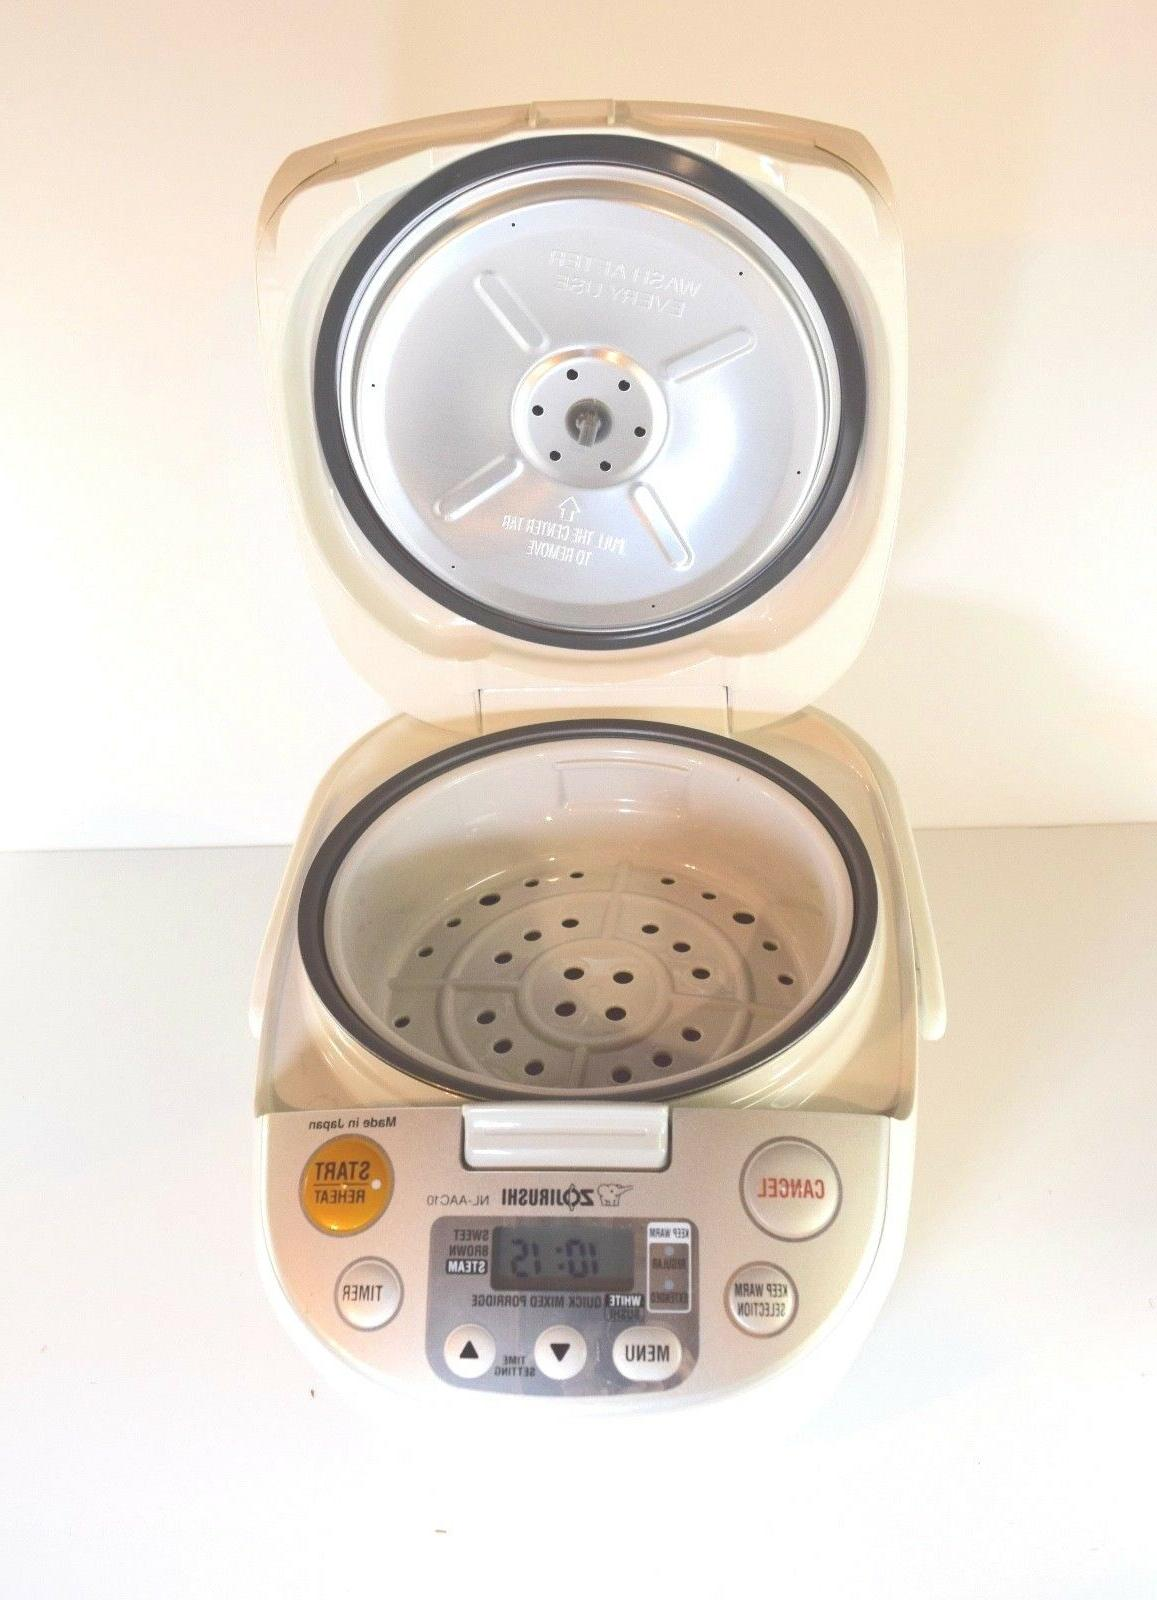 ZOJIRUSHI MICOM RICE COOKER CUP MADE IN